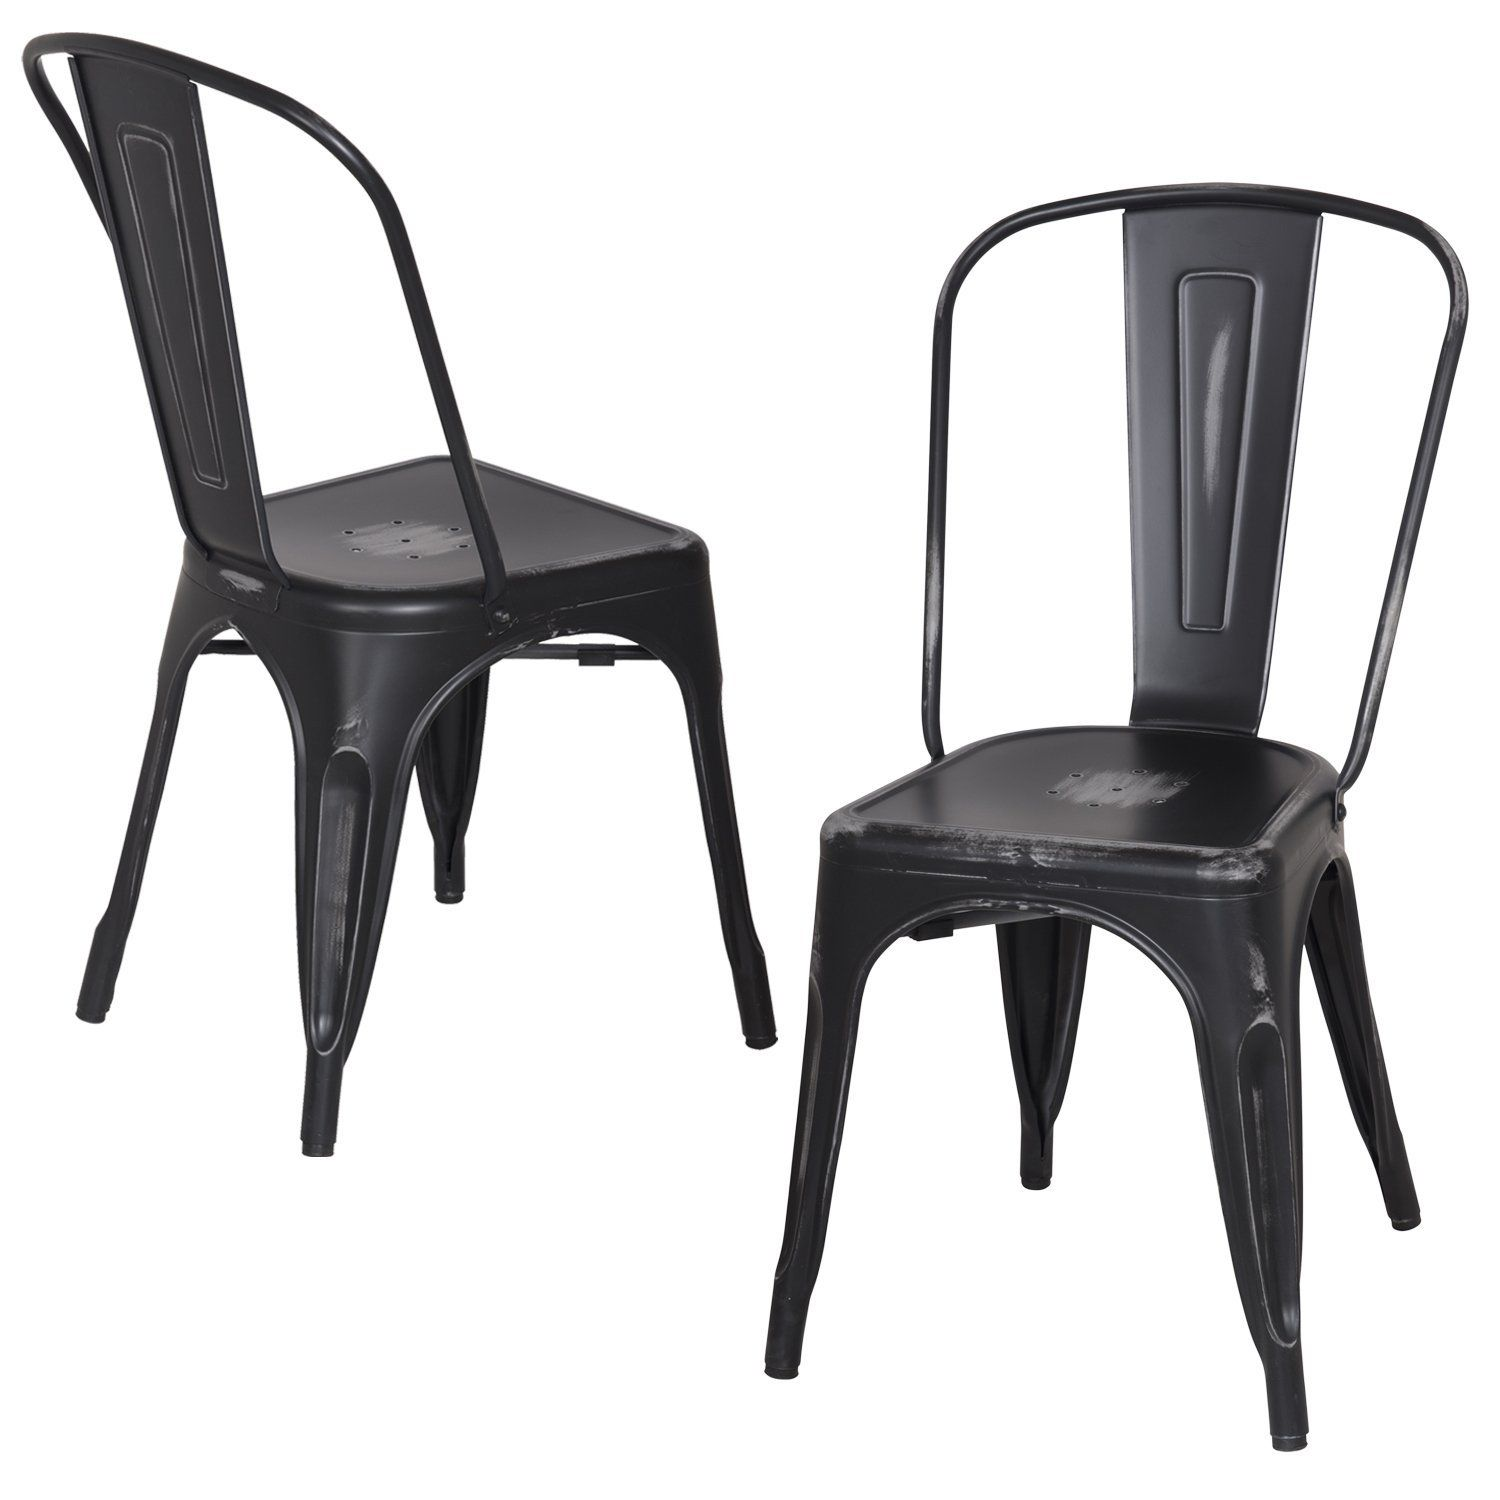 Adeco metal stackable industrial chic dining bistro cafe side chairs - Amazon Com Adeco Metal Stackable Industrial Chic Dining Bistro Cafe Side Chairs Black